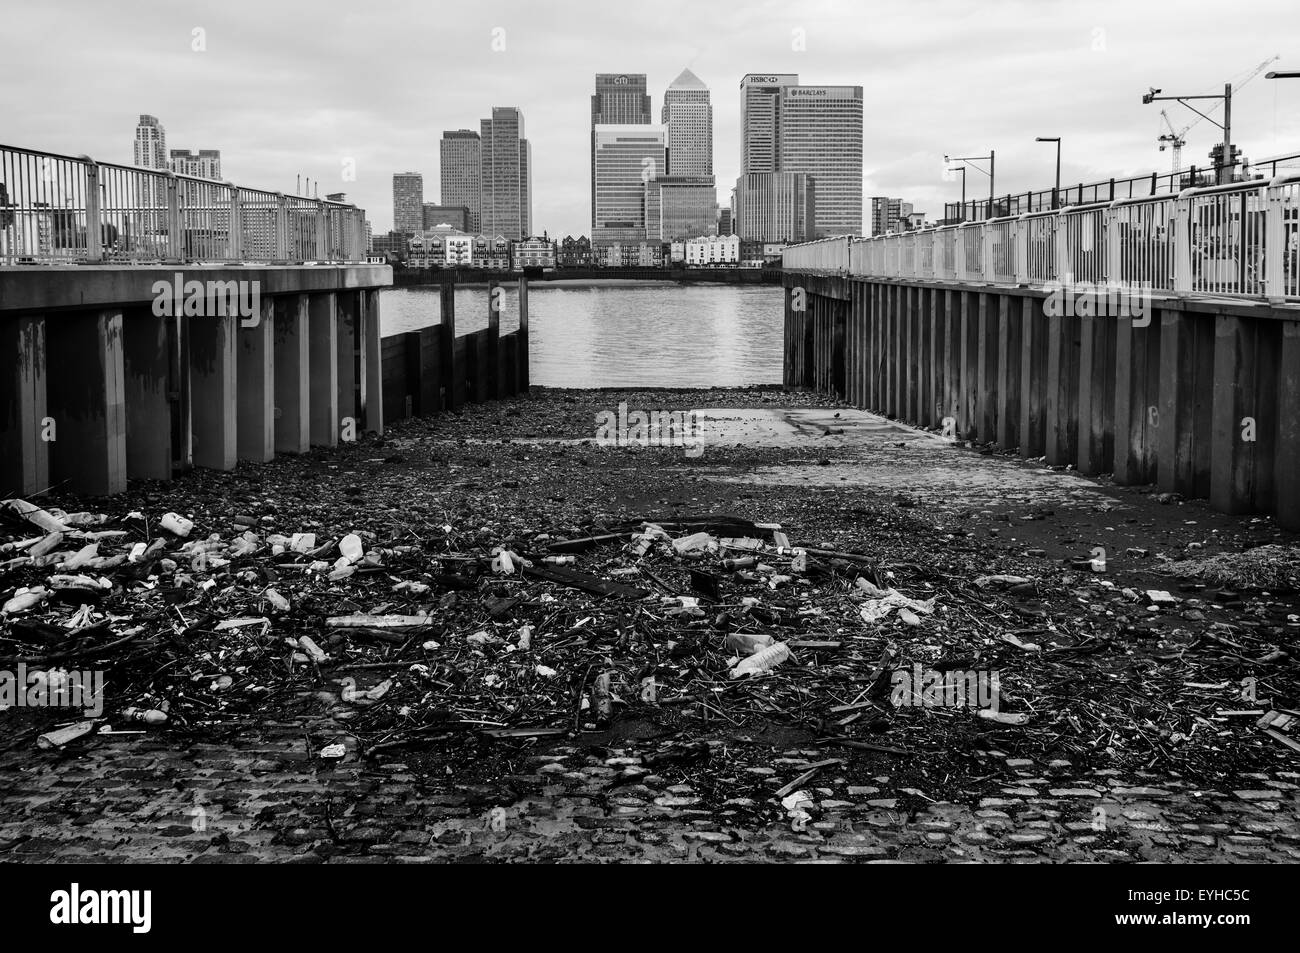 Canary Wharf seen from a slipway in North Greenwich - Stock Image